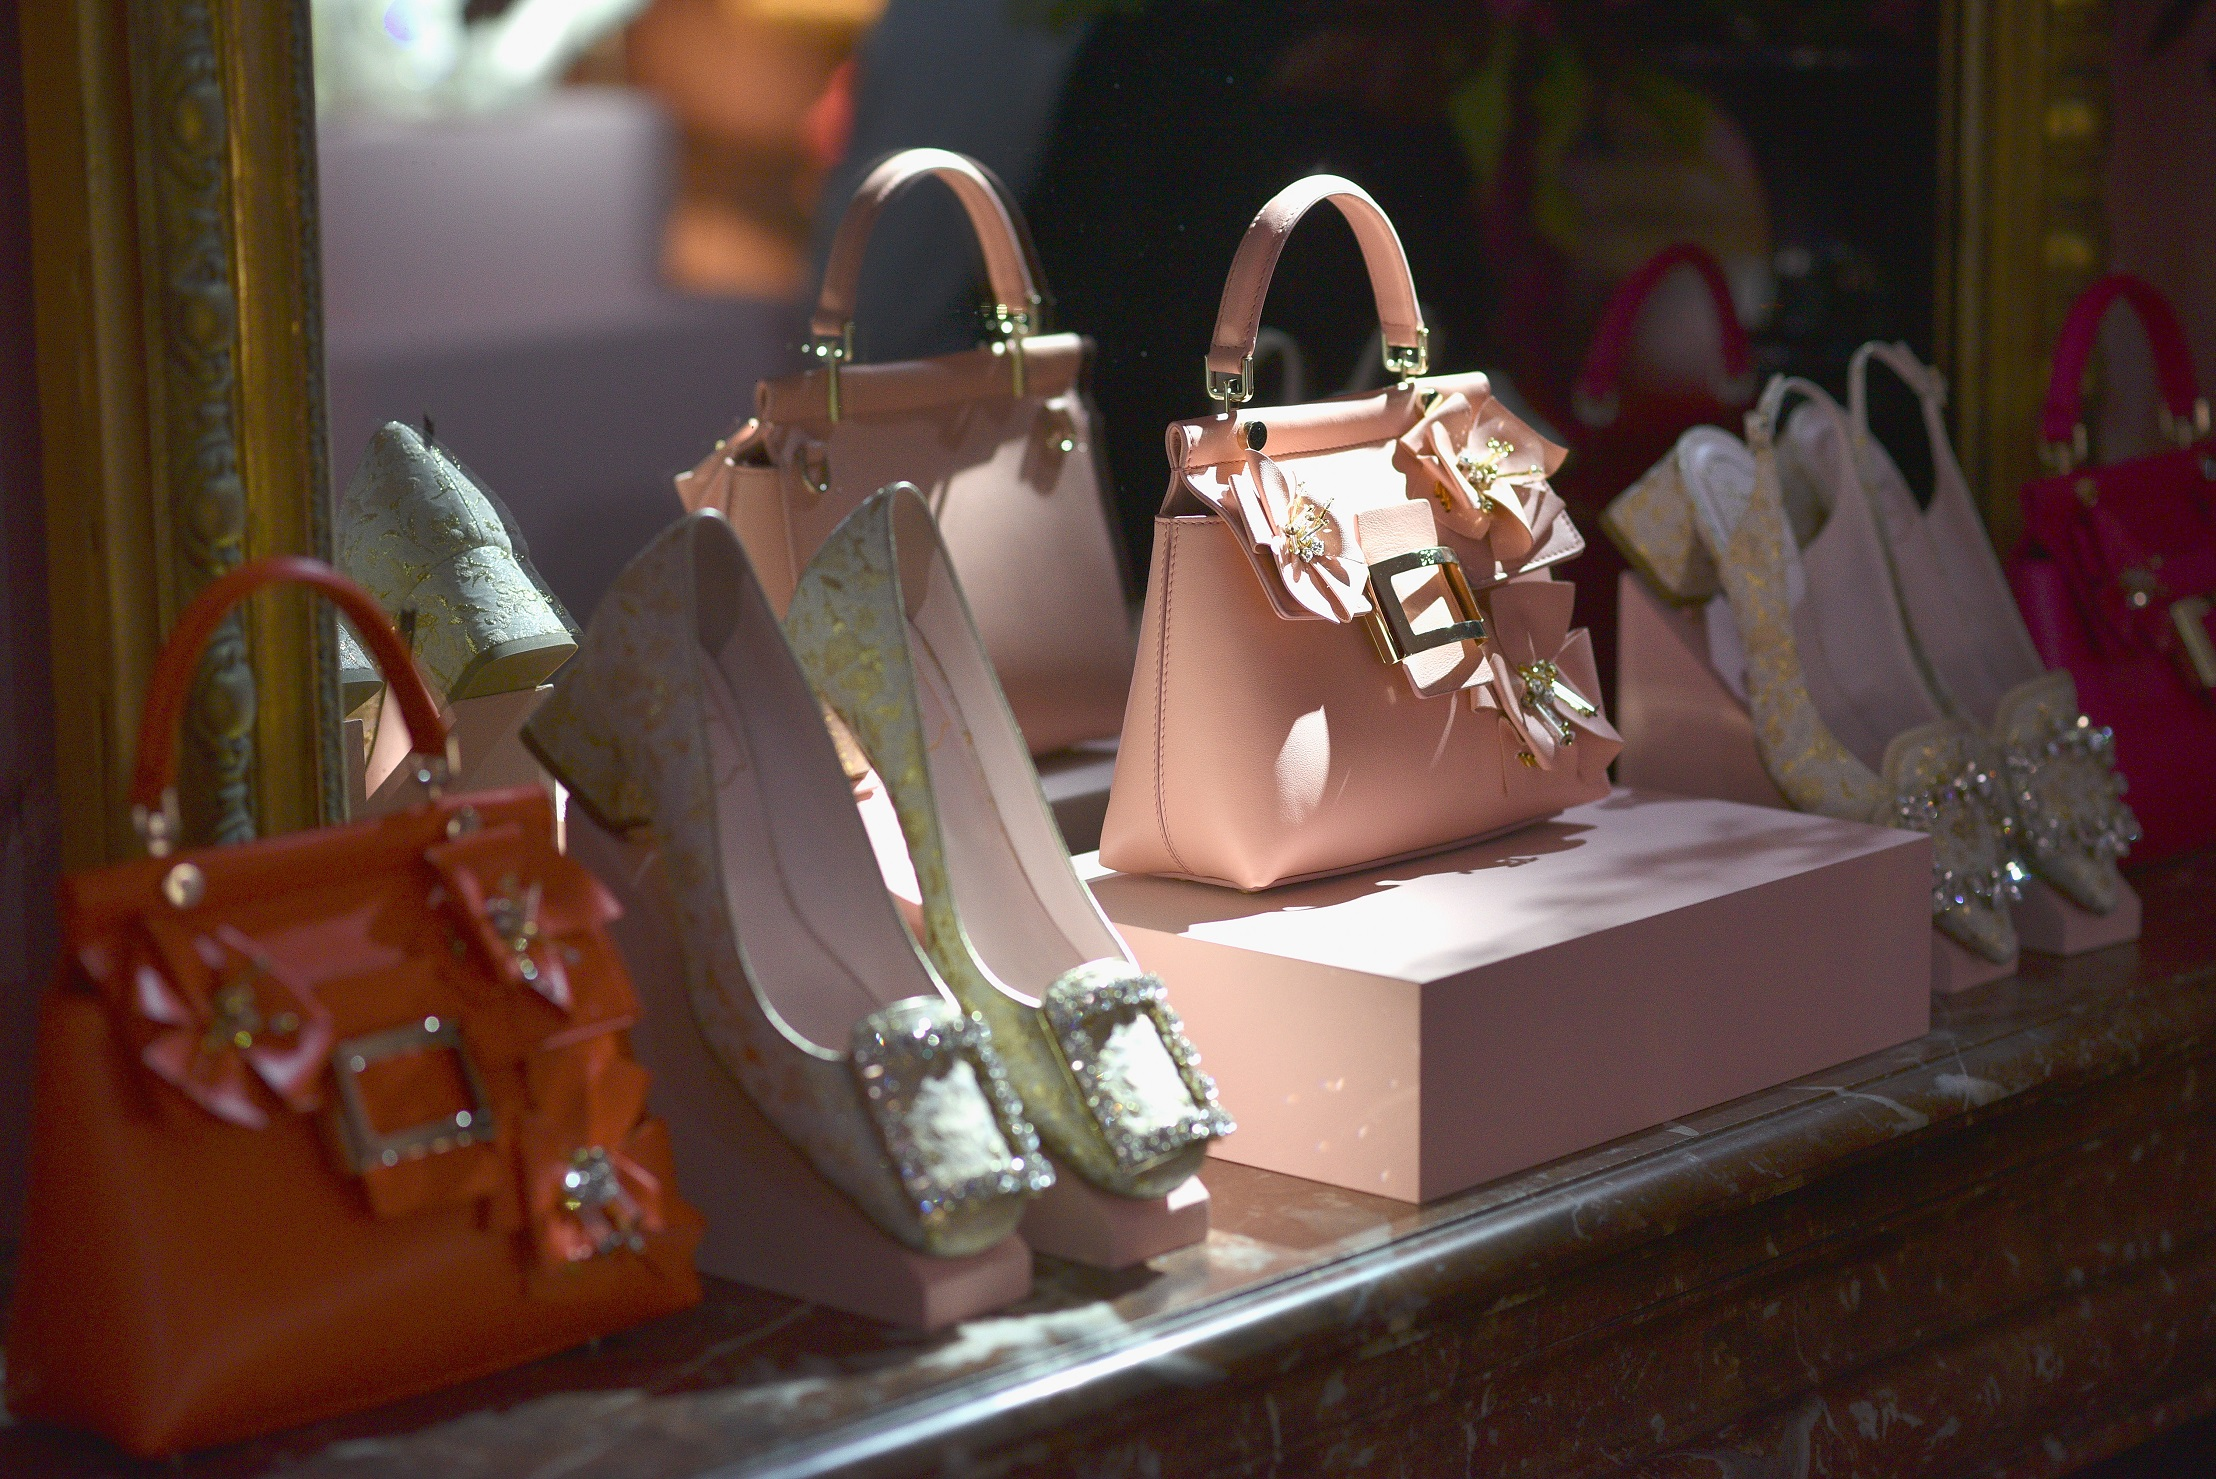 PARIS, FRANCE - SEPTEMBER 27: General atmosphere (products details) at the Roger Vivier Presentation Spring/Summer 2019 during Paris Fashion Week on September 27, 2018 in Paris, France. (Photo by Francois Durand/Getty Images For Roger Vivier)